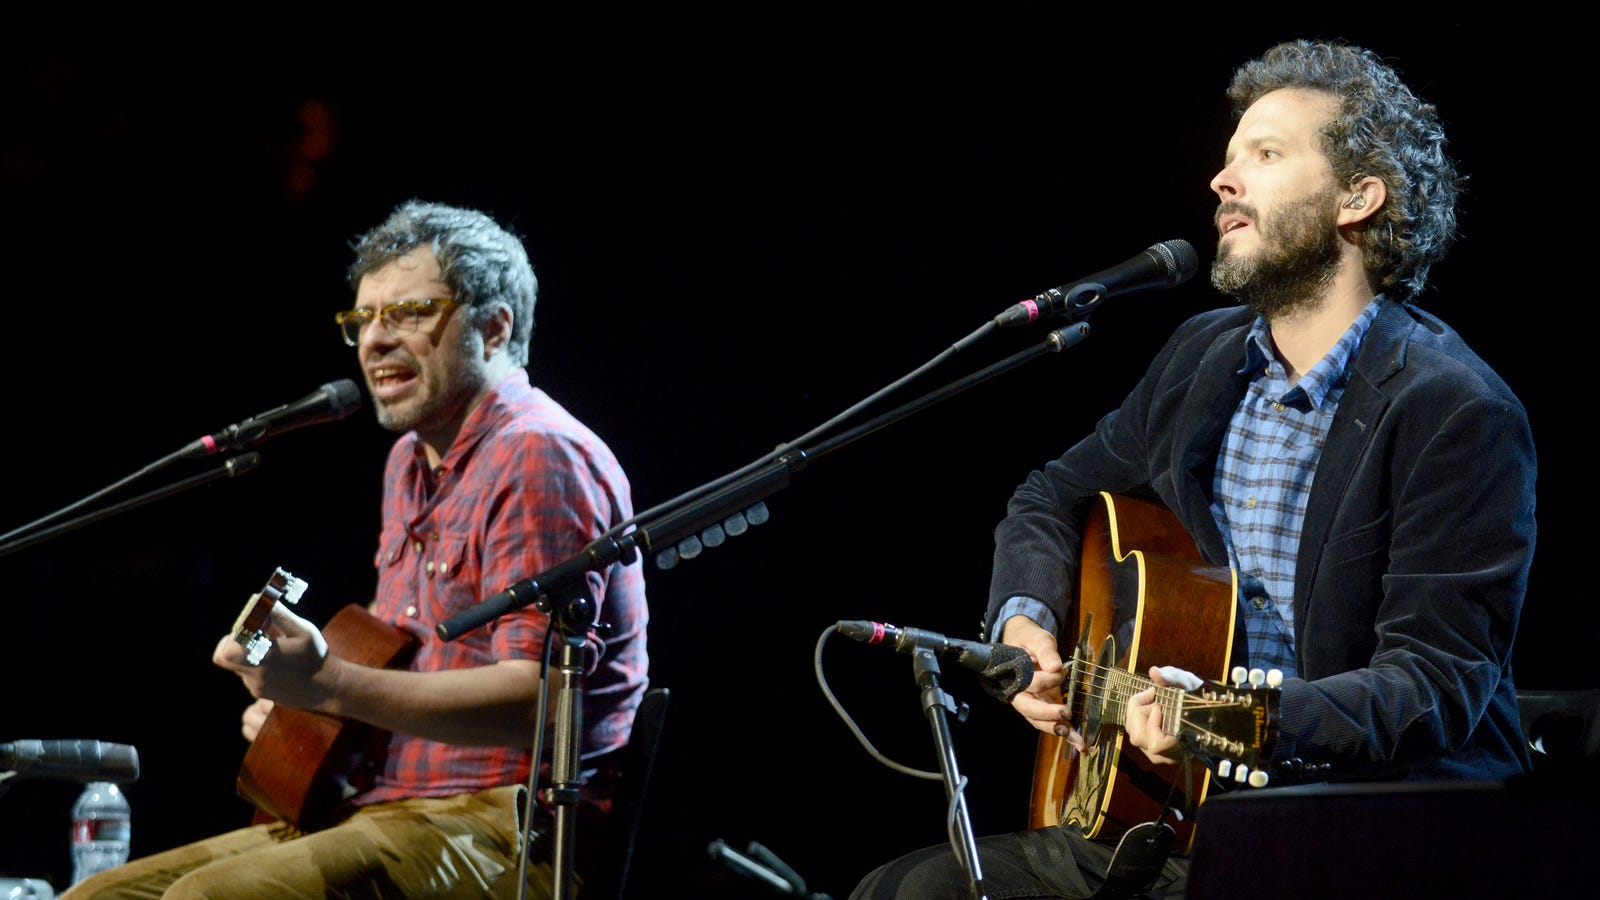 Jemaine Clement Says Flight Of The Conchords Is Coming Back For An